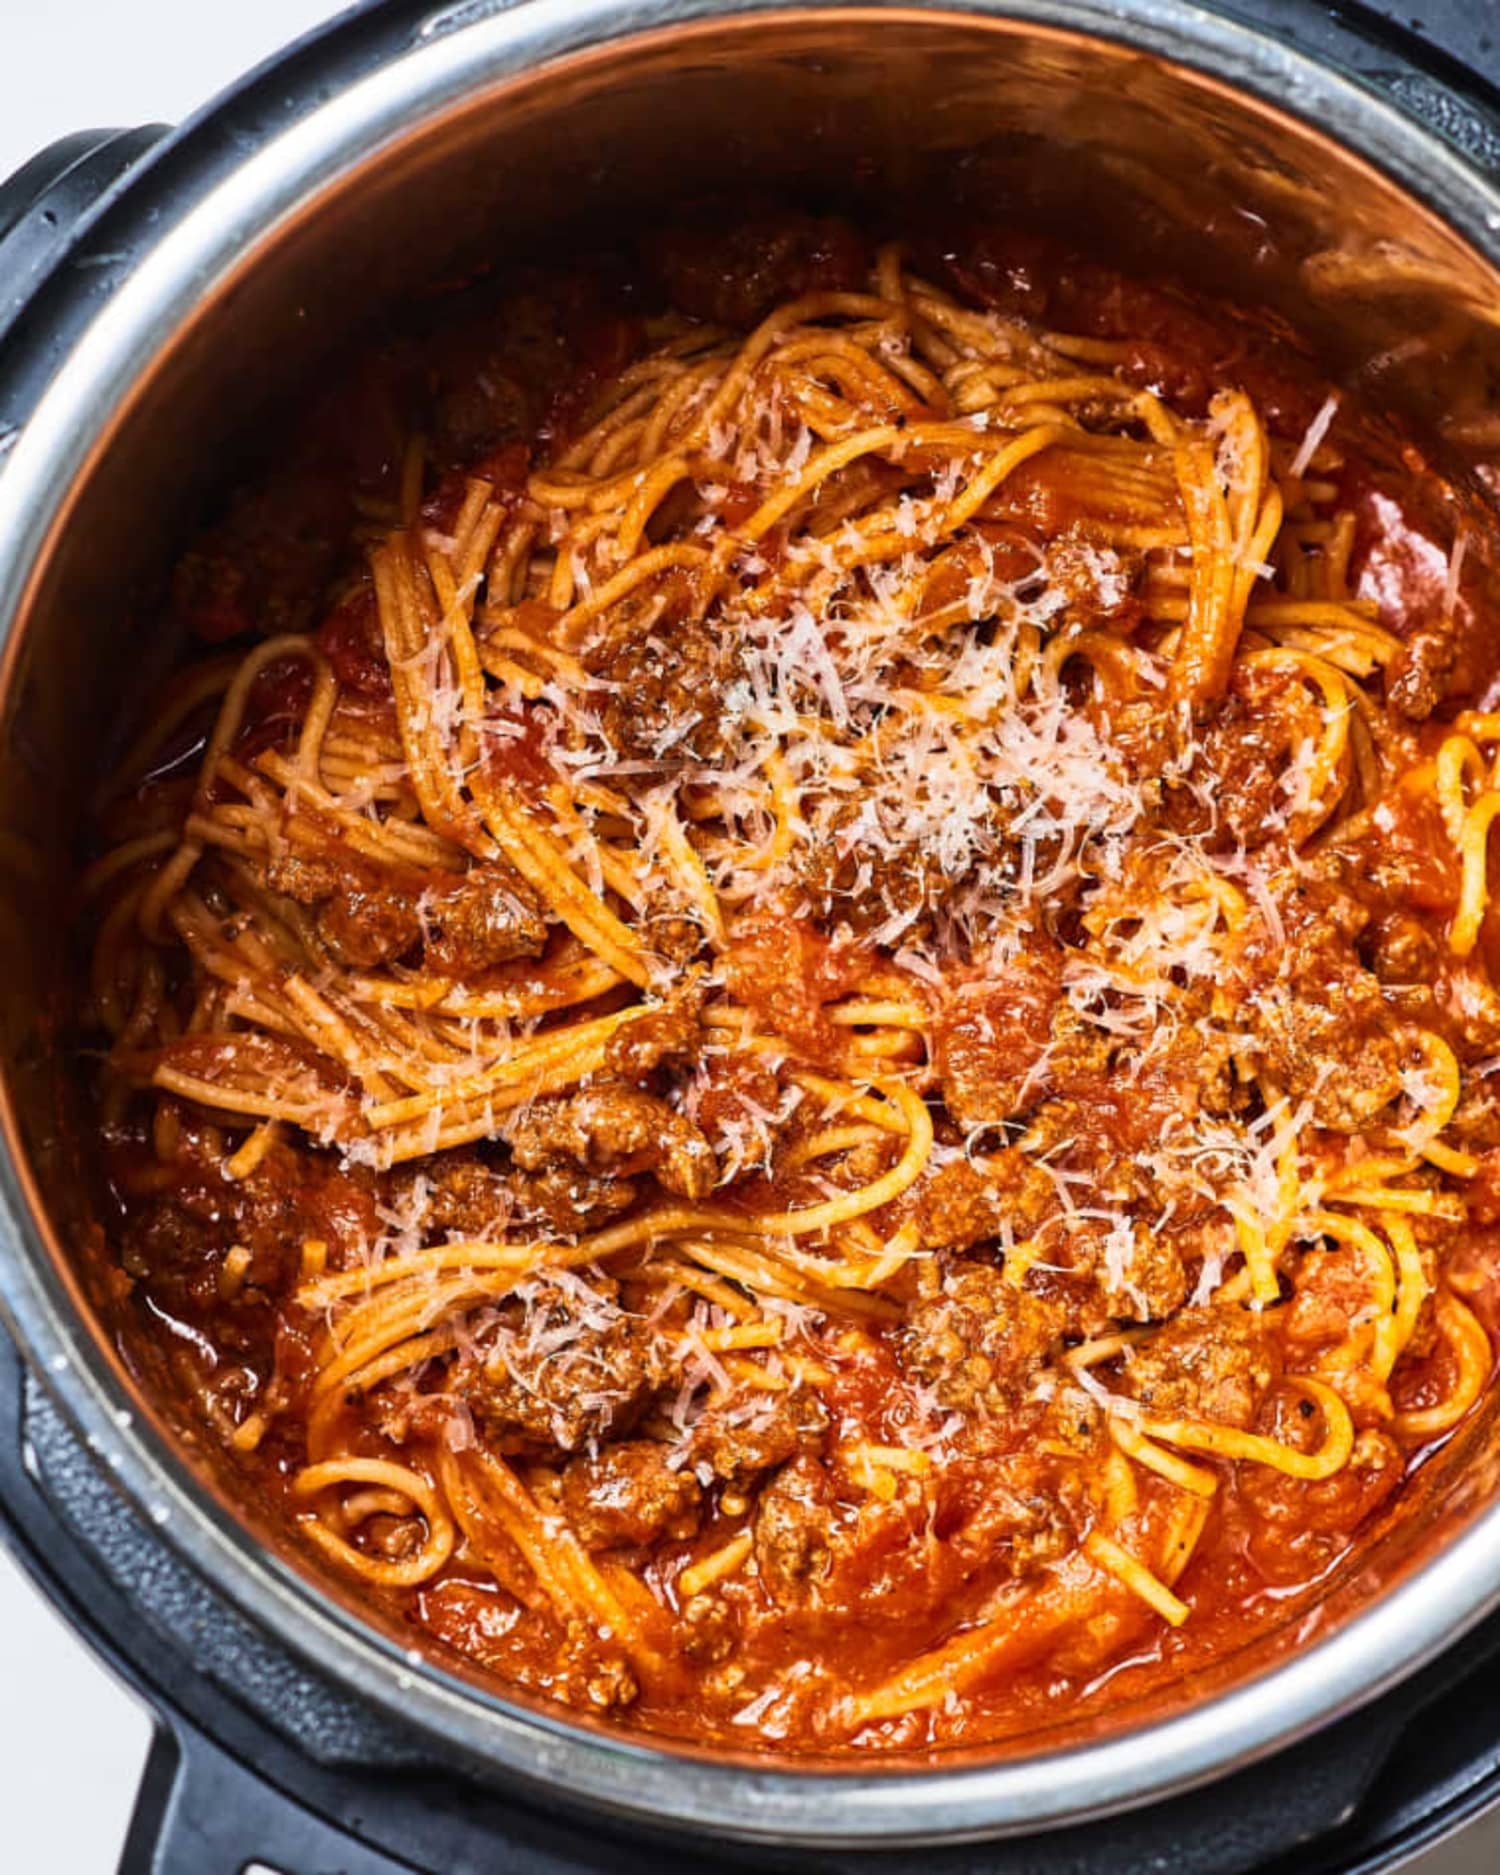 8 Ridiculously Tasty Pasta Dinners to Make in Your Instant Pot